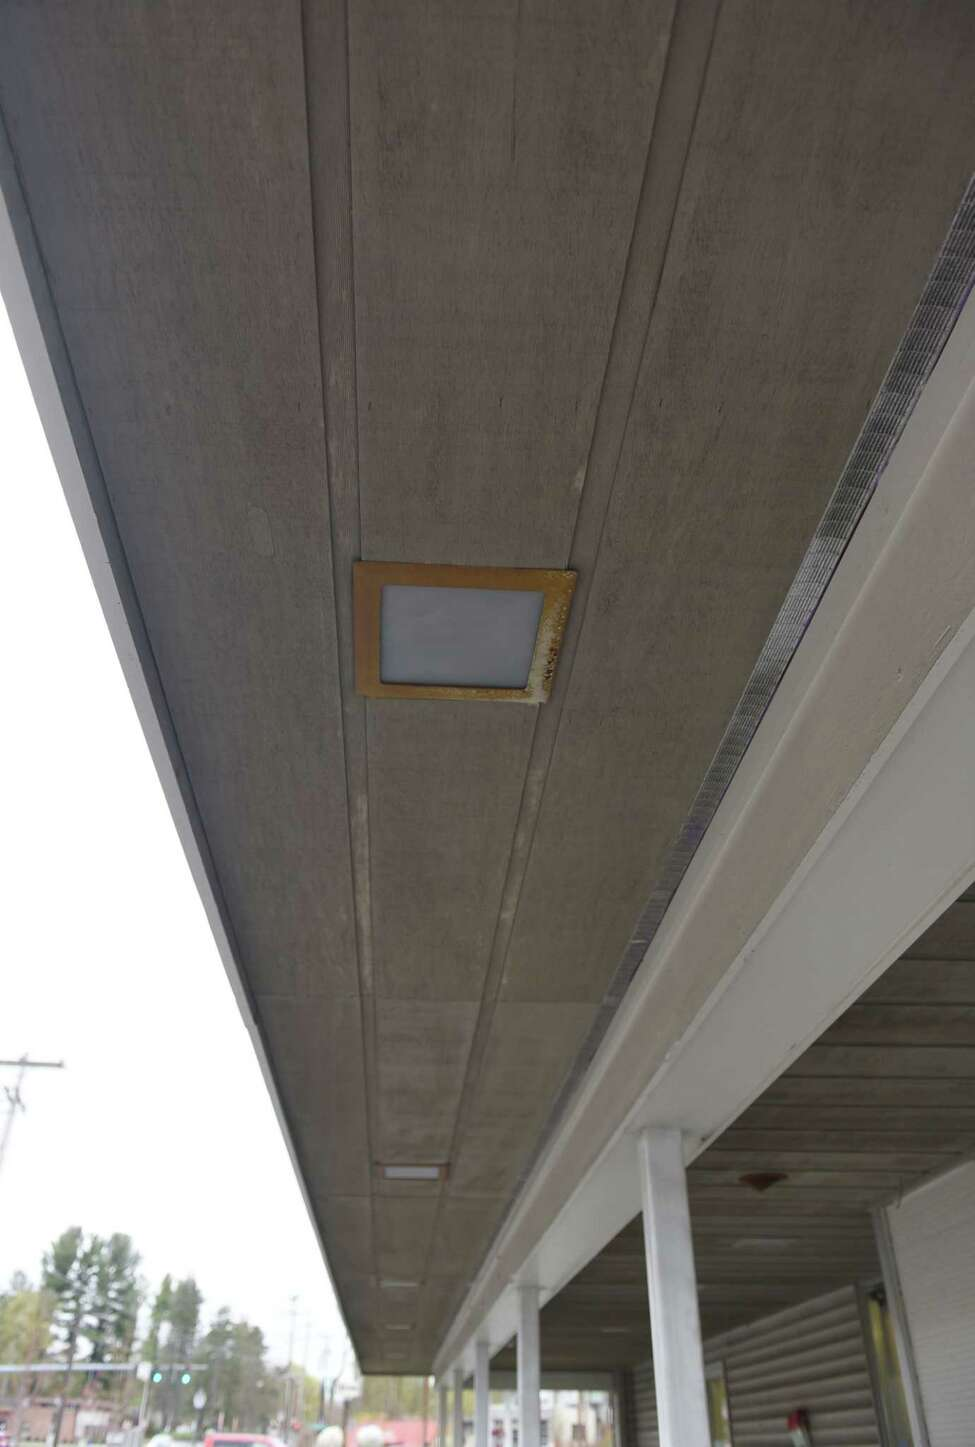 A view of the broken overhead lights on the ceiling of the outside of Girl Fight Fitness on Wednesday, May 1, 2019 in Burnt Hills, NY. (Phoebe Sheehan/Times Union)